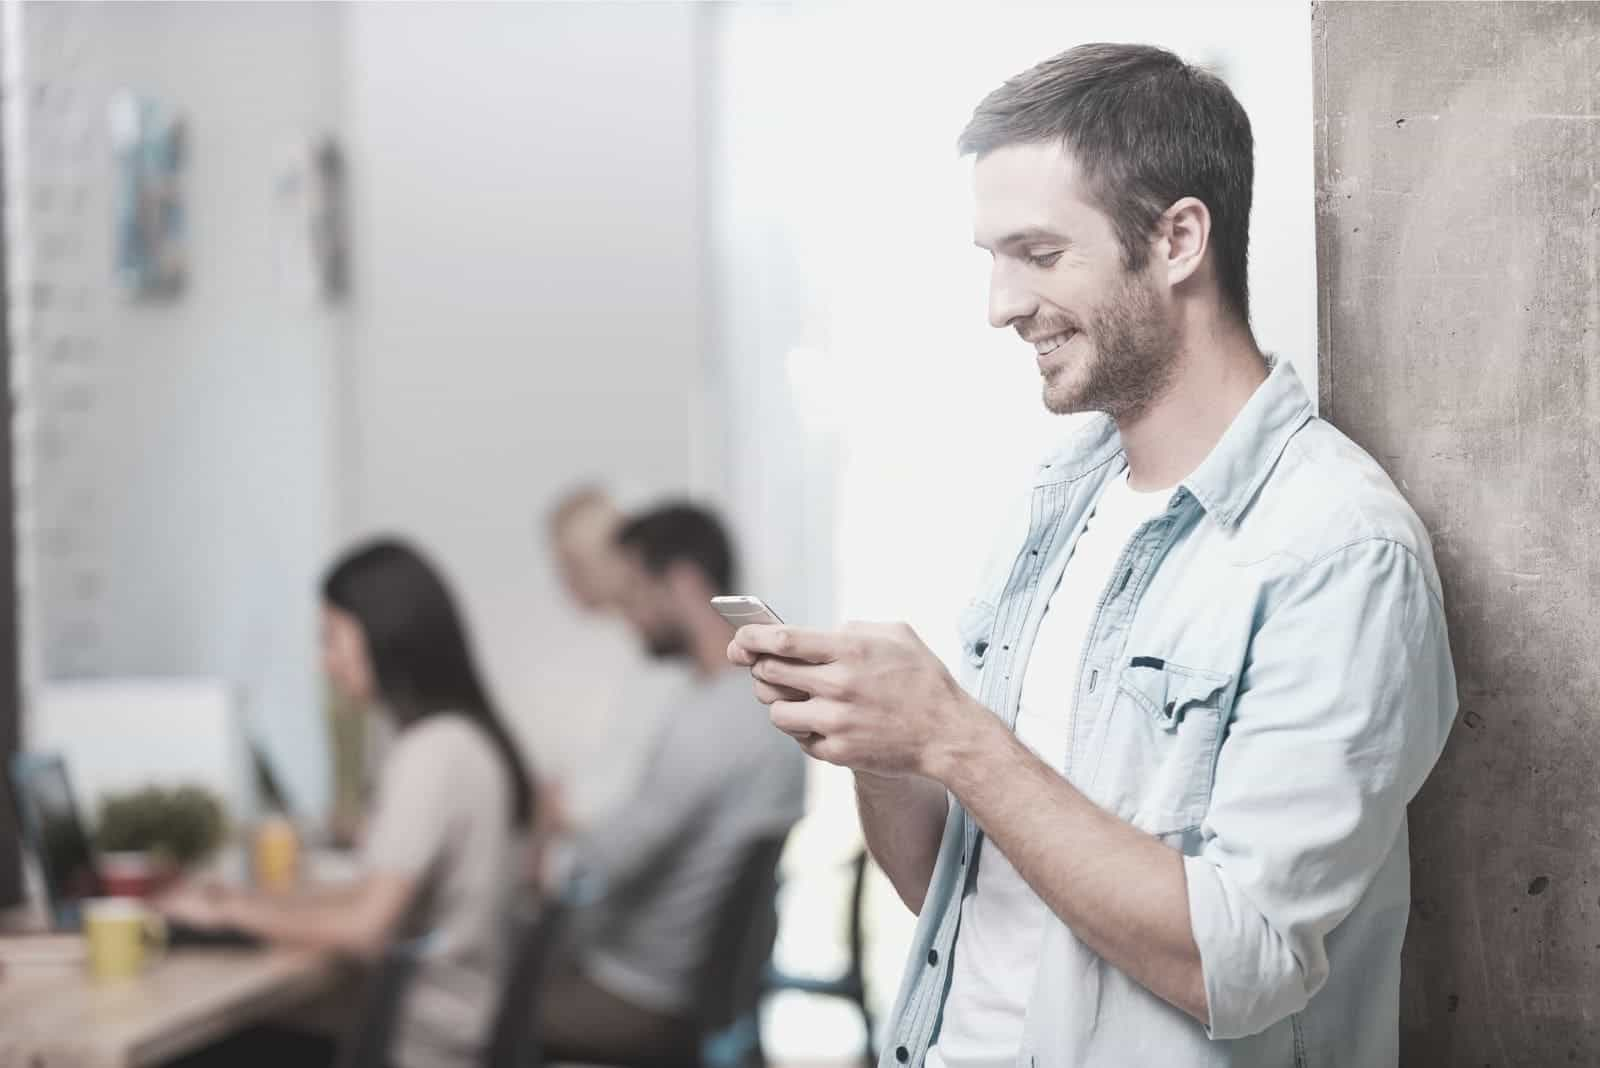 man texting inside the office with colleagues busy working in the table